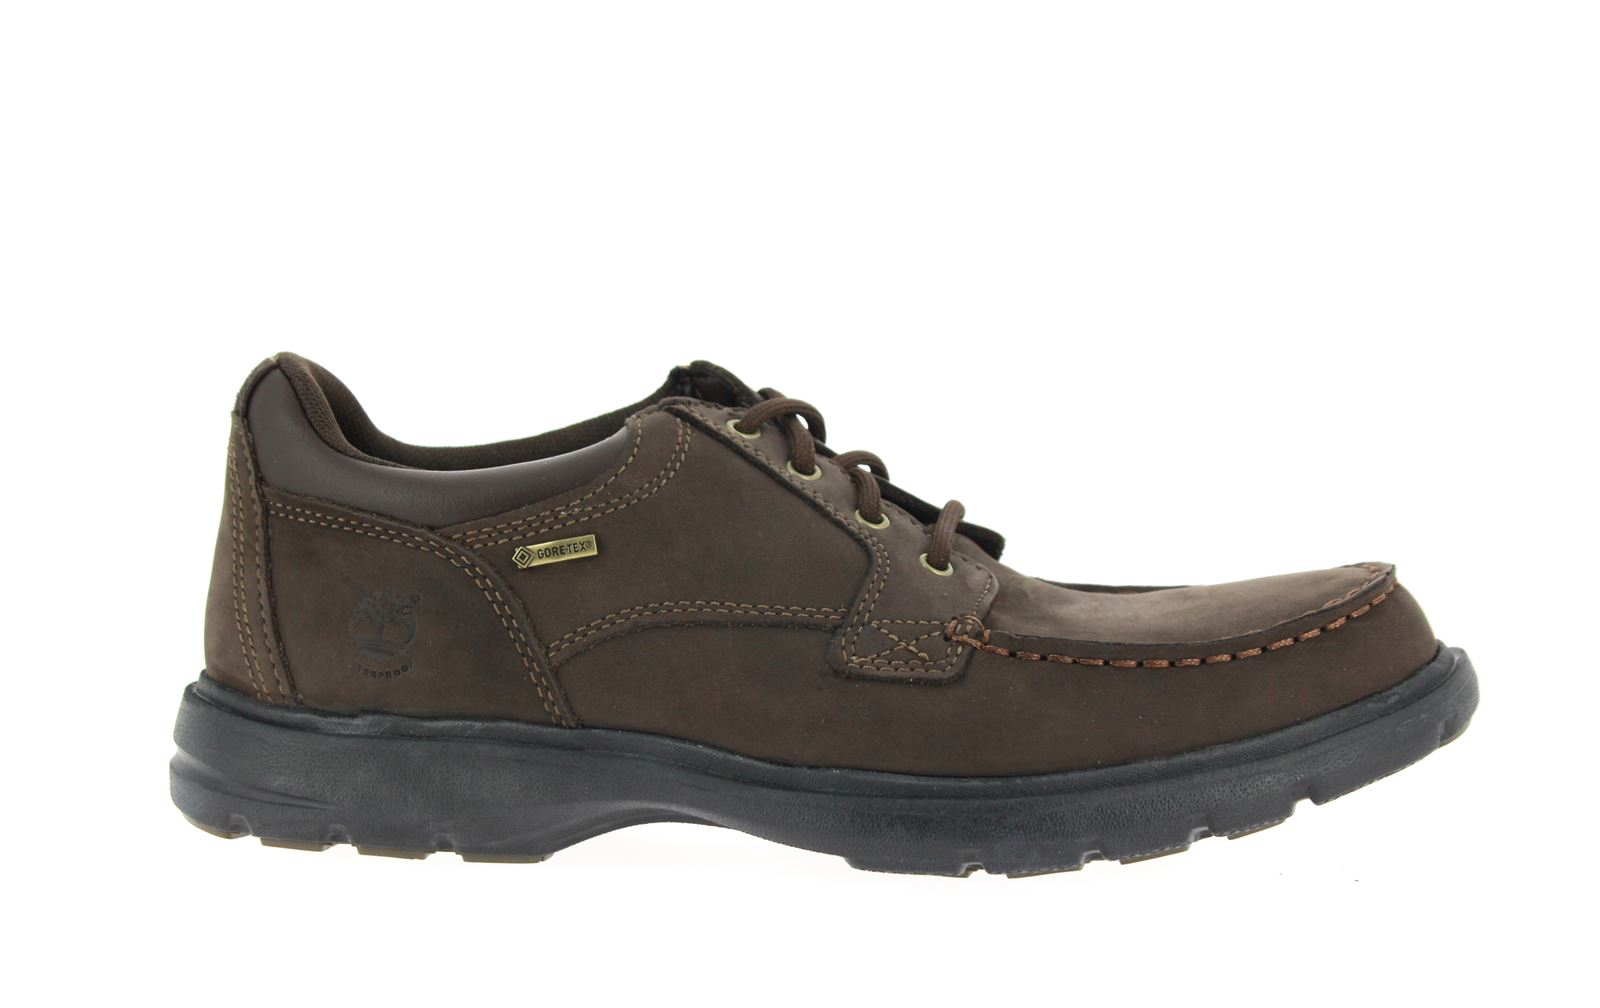 Timberland lace-up EKRICH DARK BROWN